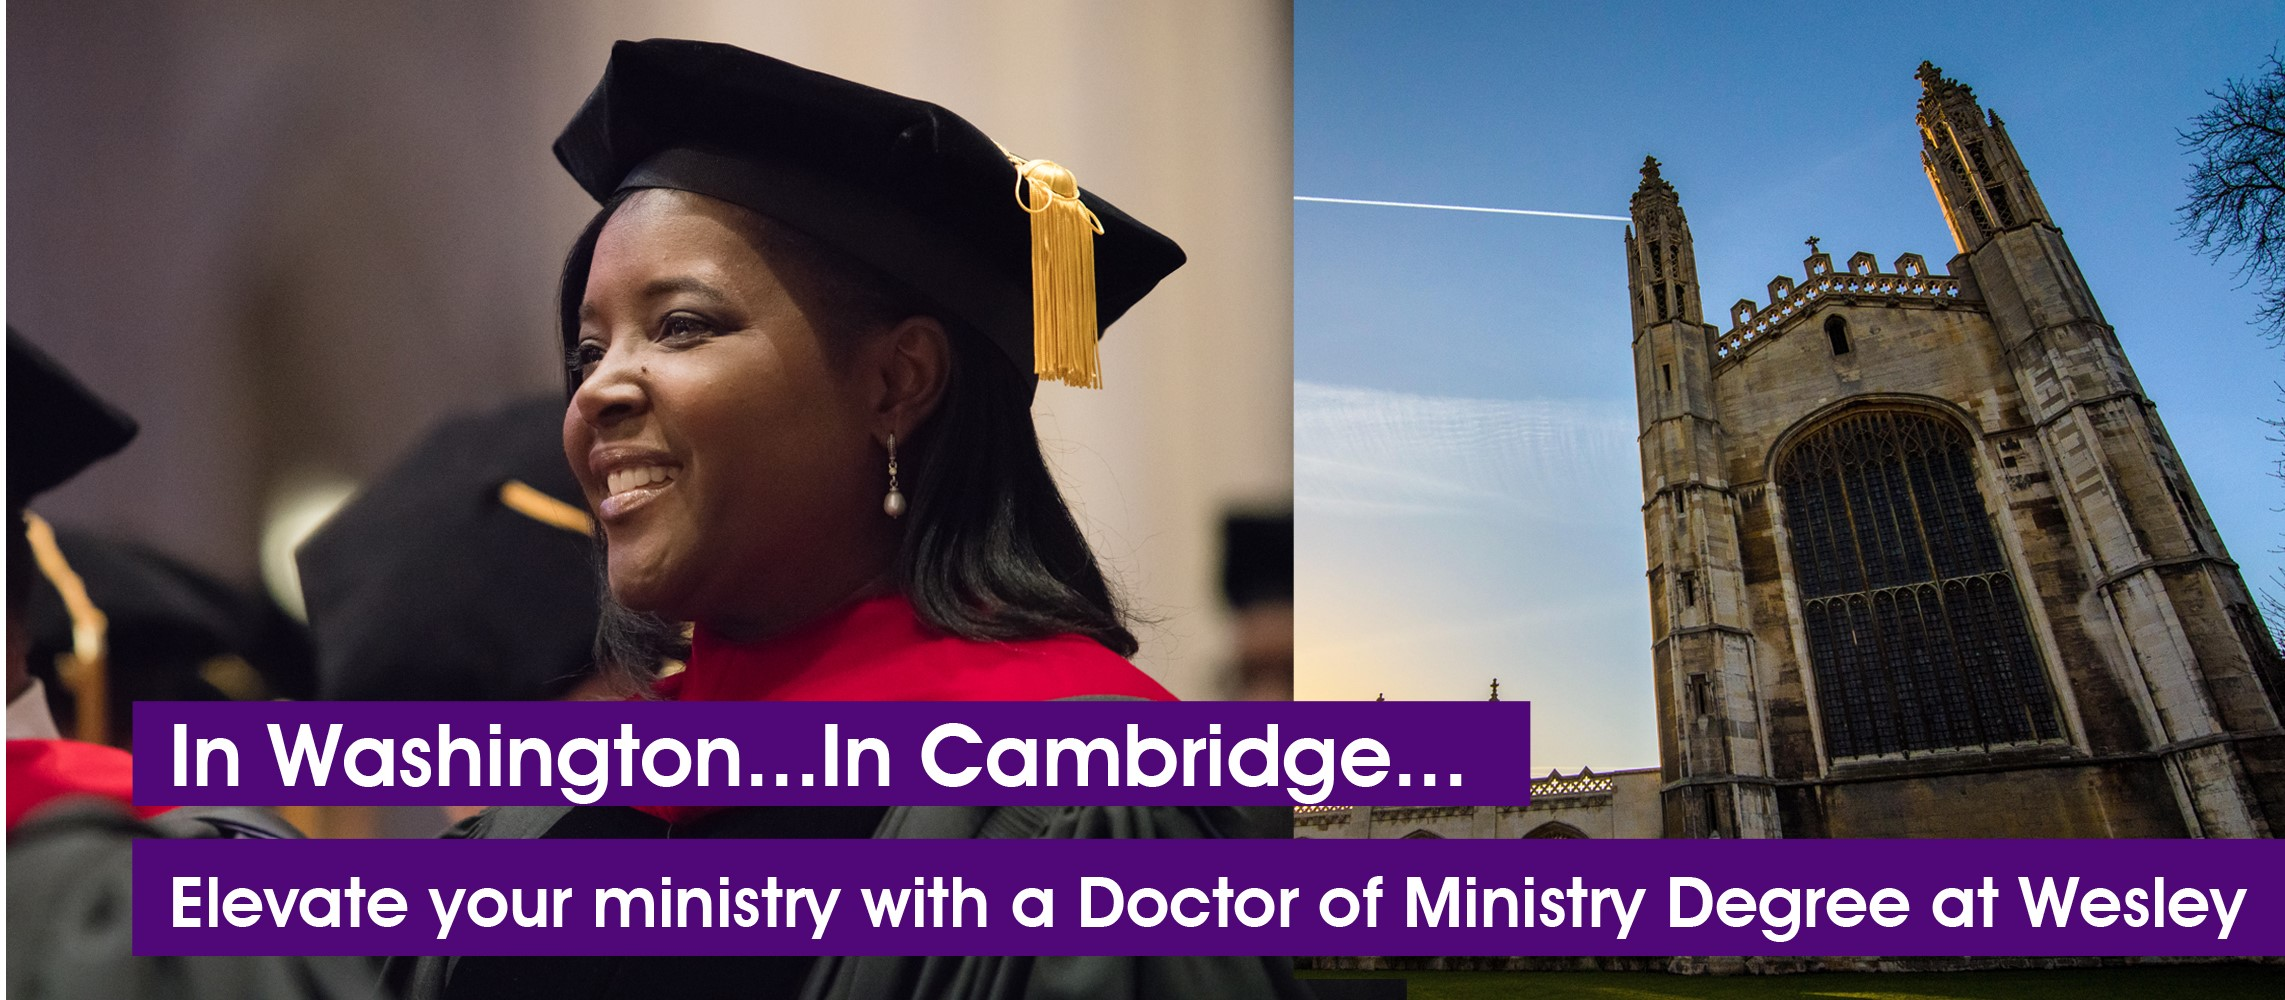 In Washington... In Cambridge... Elevate your ministry with a Doctor of Ministry Degree at Wesley